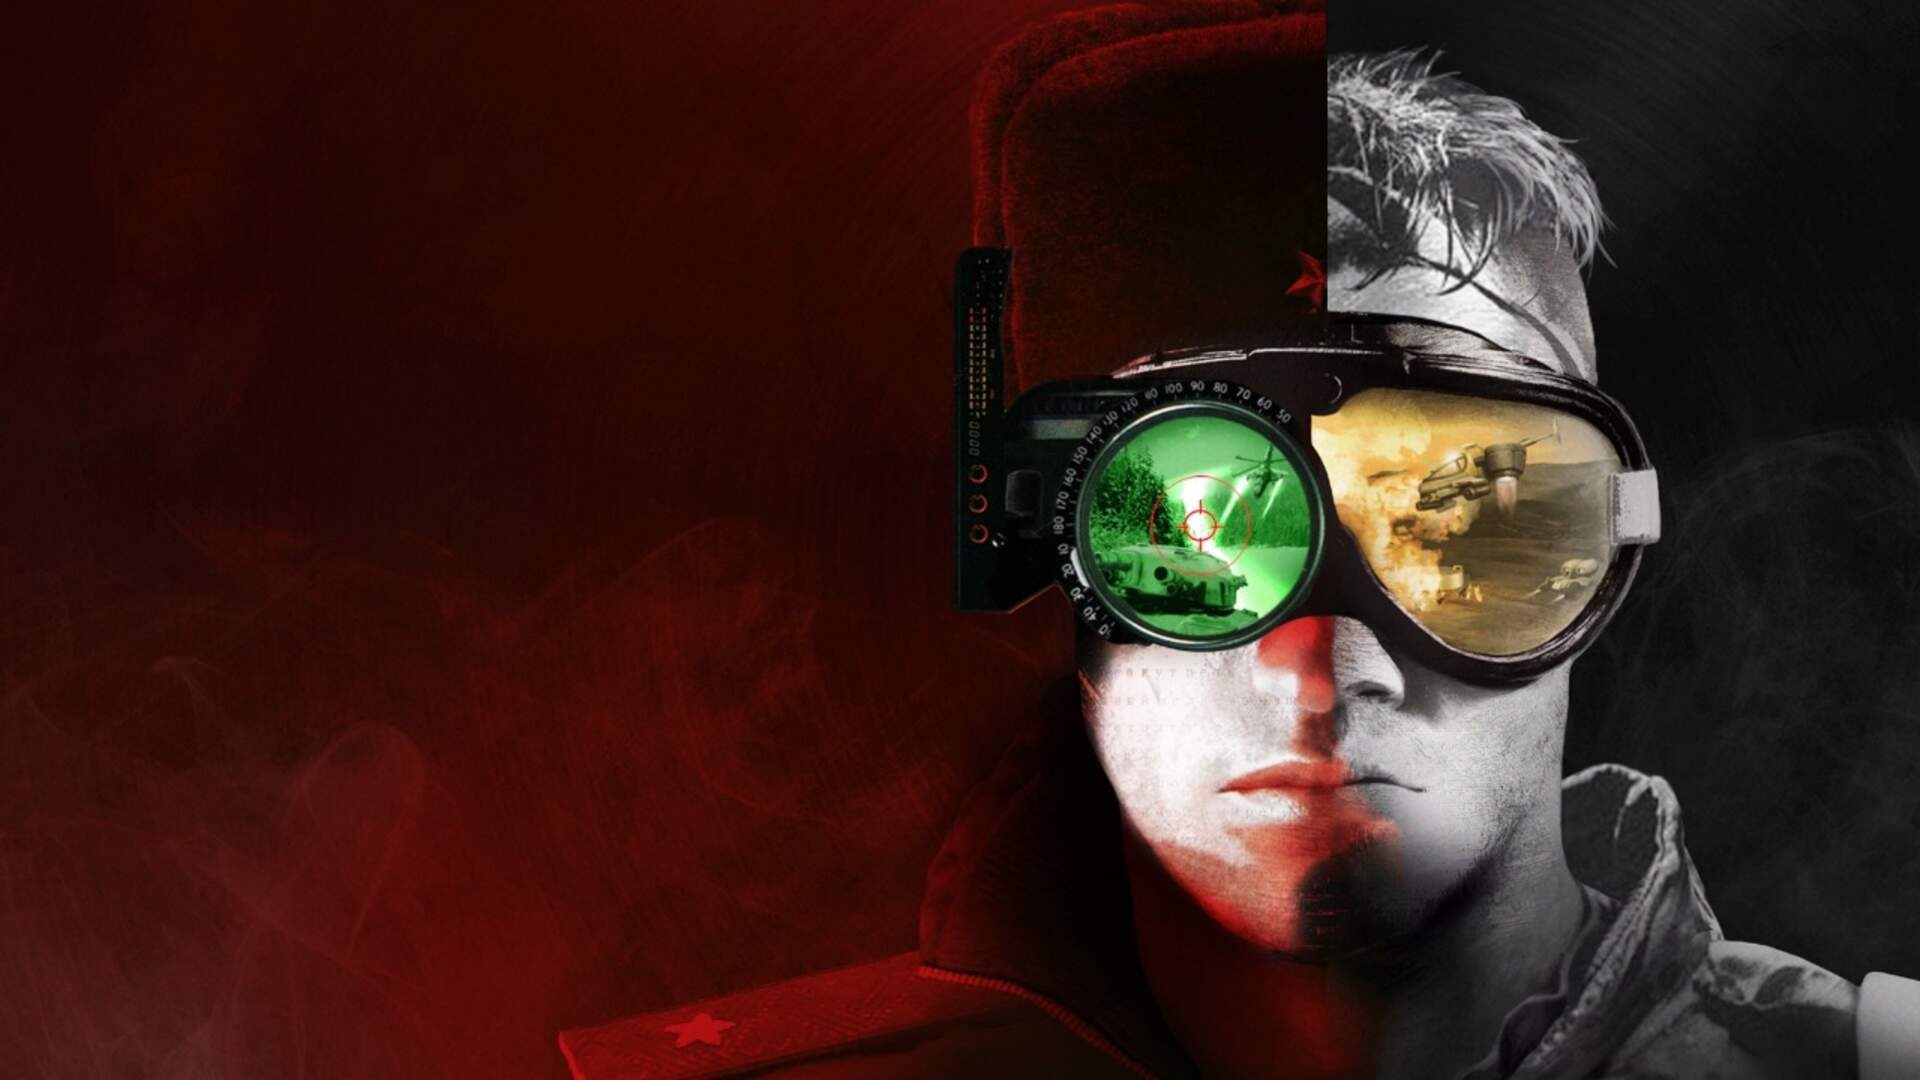 Command & Conquer Remastered Collection Review: Let's Rock